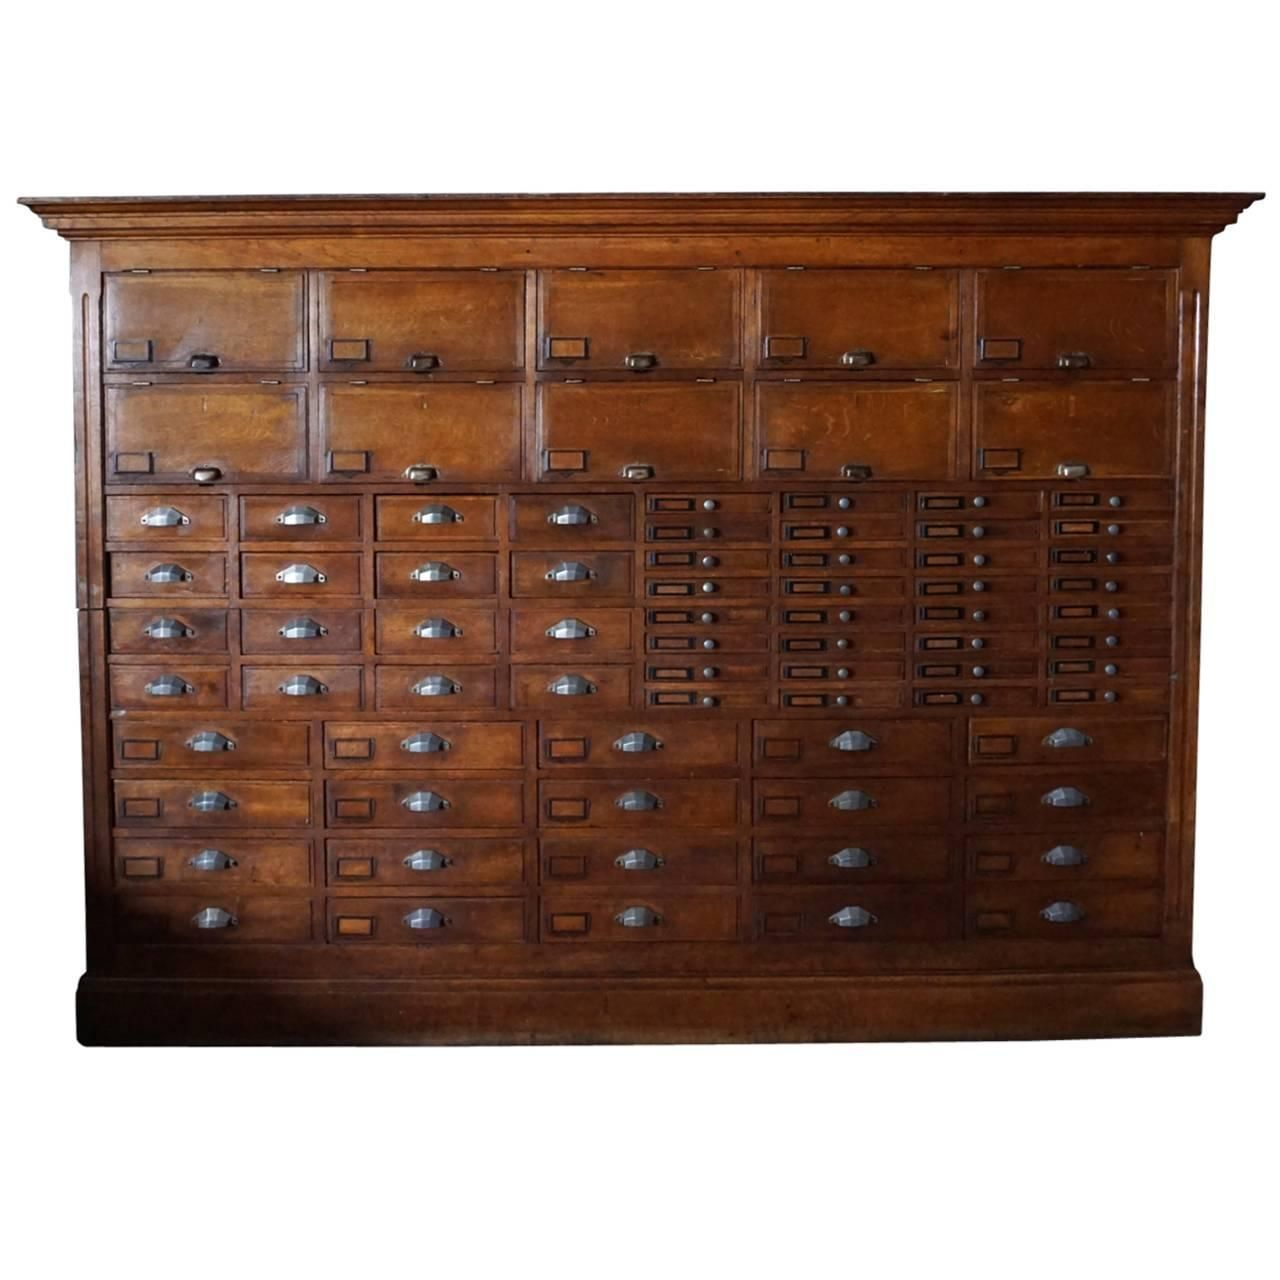 Antique Apothecary Cabinet Apothecary Cabinet Chinese 19th Century Furniture Storage And